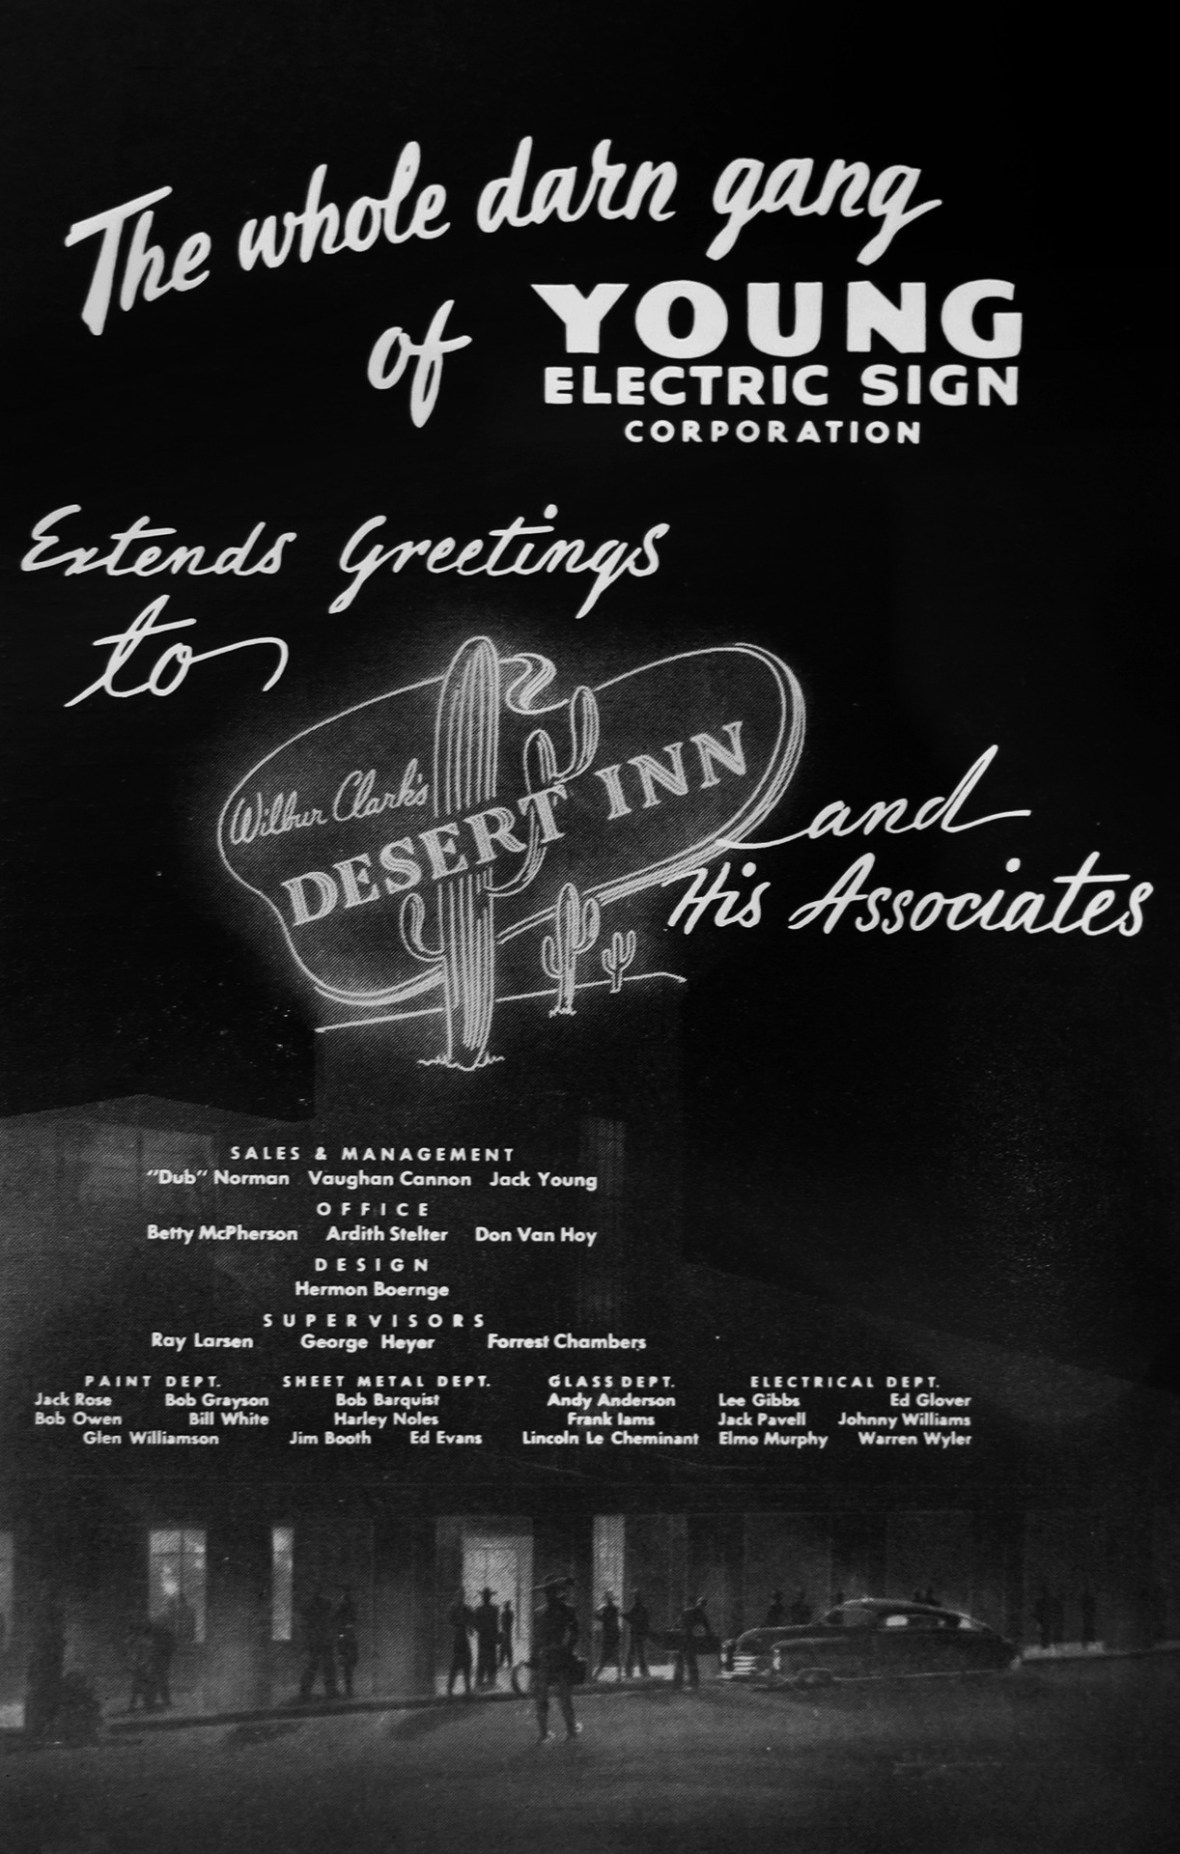 Young Electric Sign Corporation (YESCO) - published in Jack Cortez's Fabulous Las Vegas Magazine - April 1950